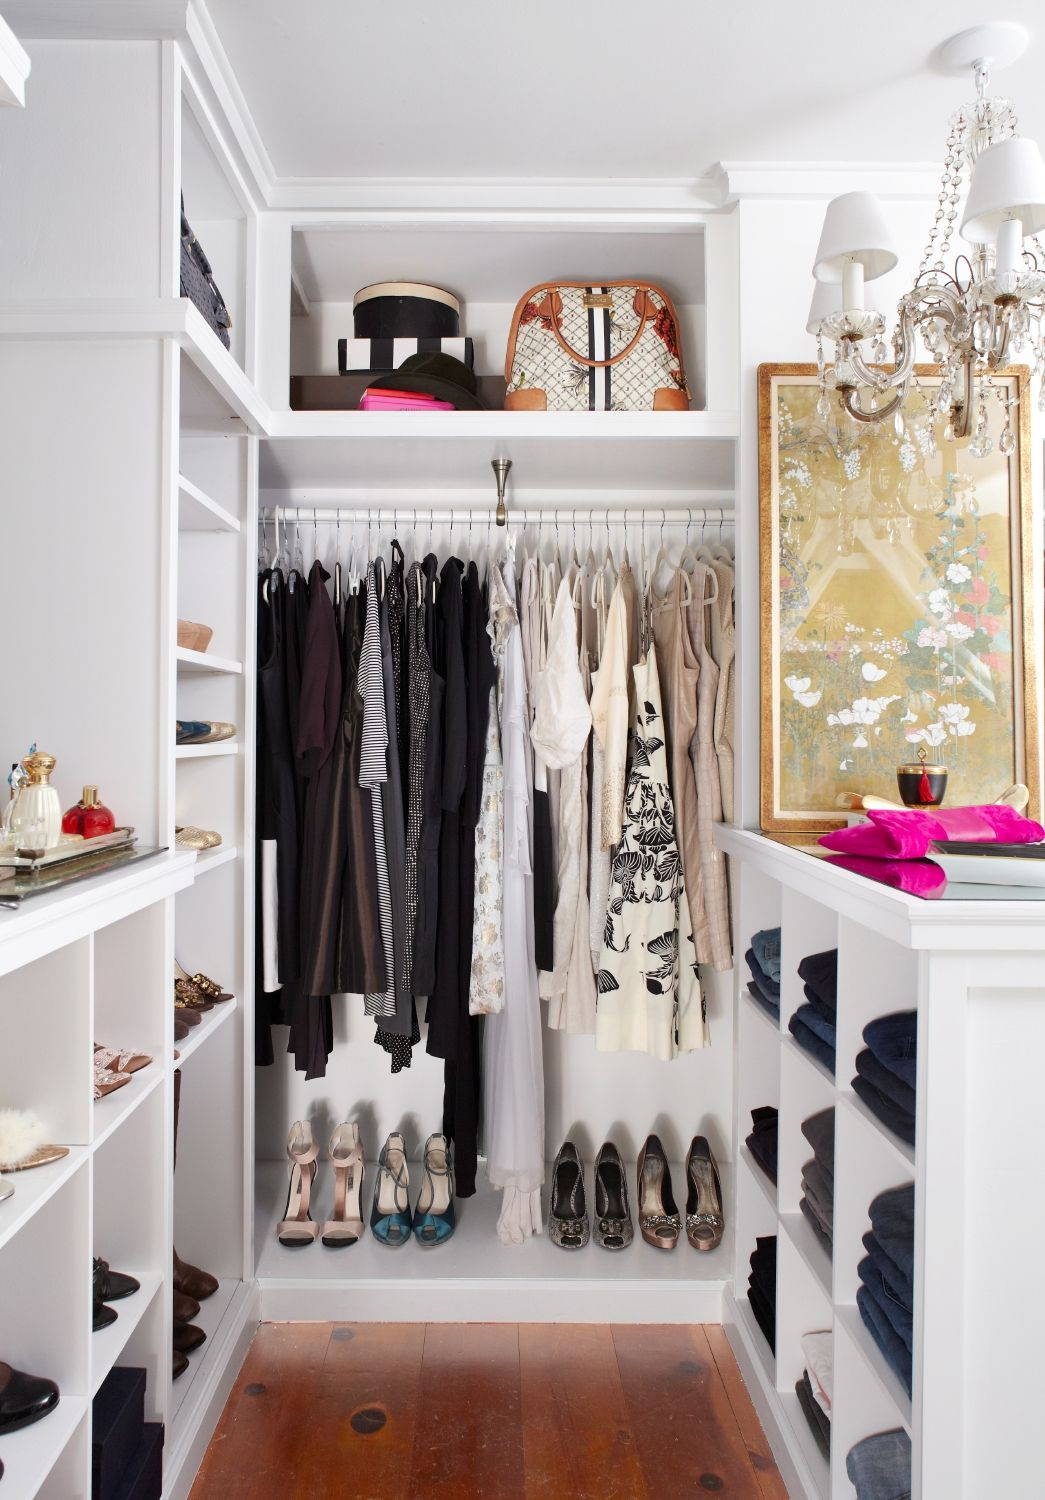 small walk in closet designs with shelves raise hanging rack and add shelvesbox slot under instead ceiling high shelf become another hanging rack with box